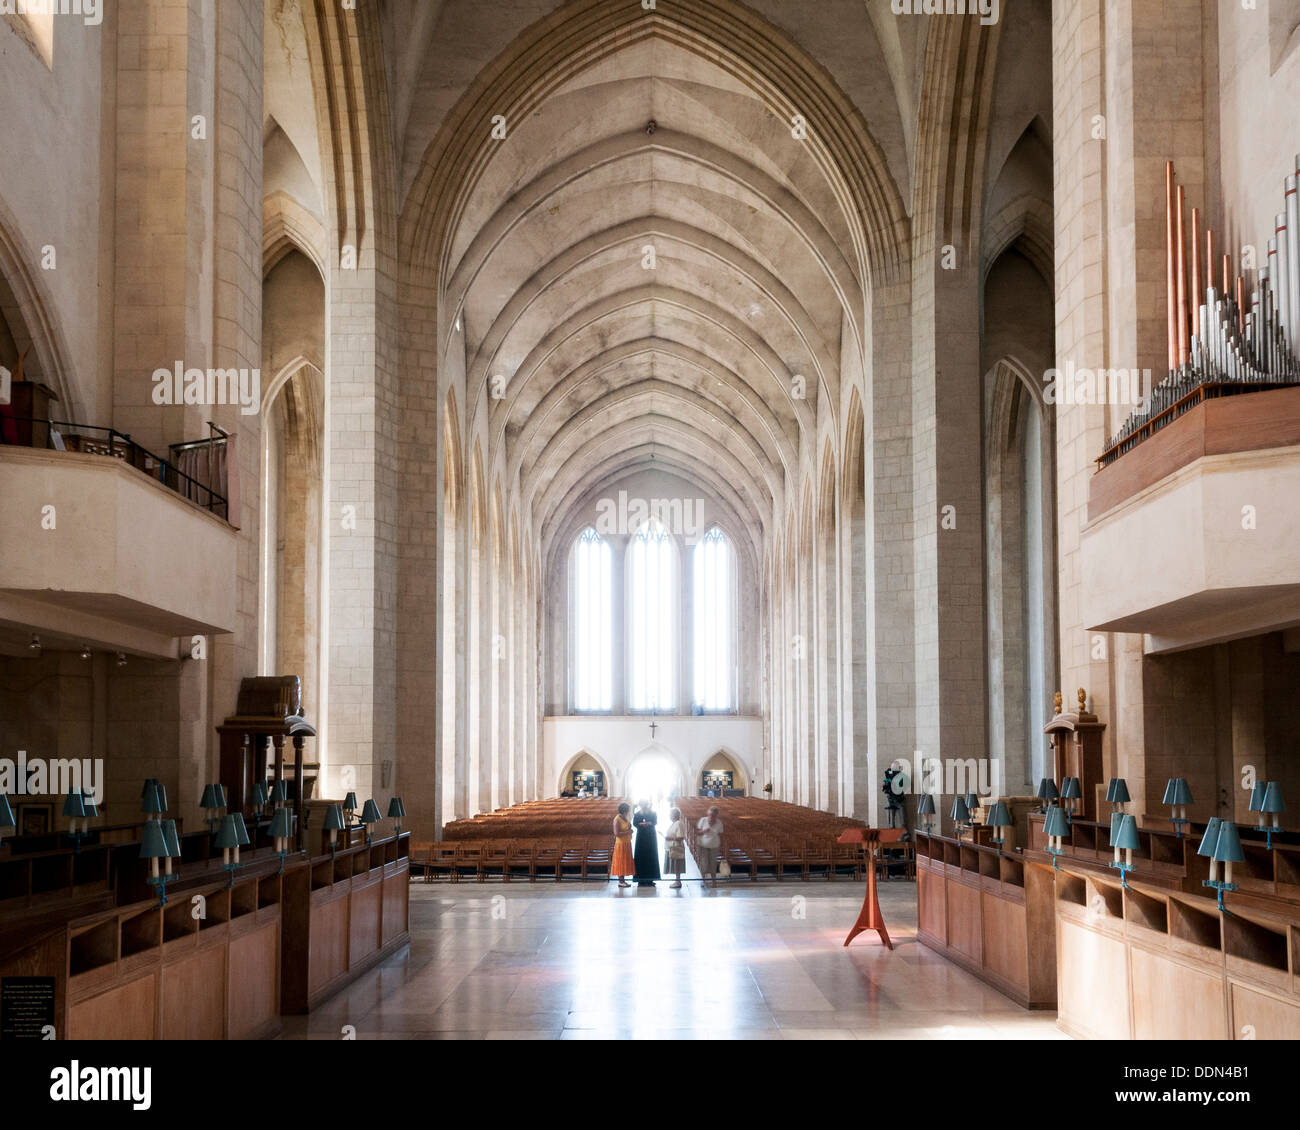 Guildford Cathedral, Guildford, United Kingdom. Architect: Sir Edward Maufe, 1961. Main hall from altar. Stock Photo